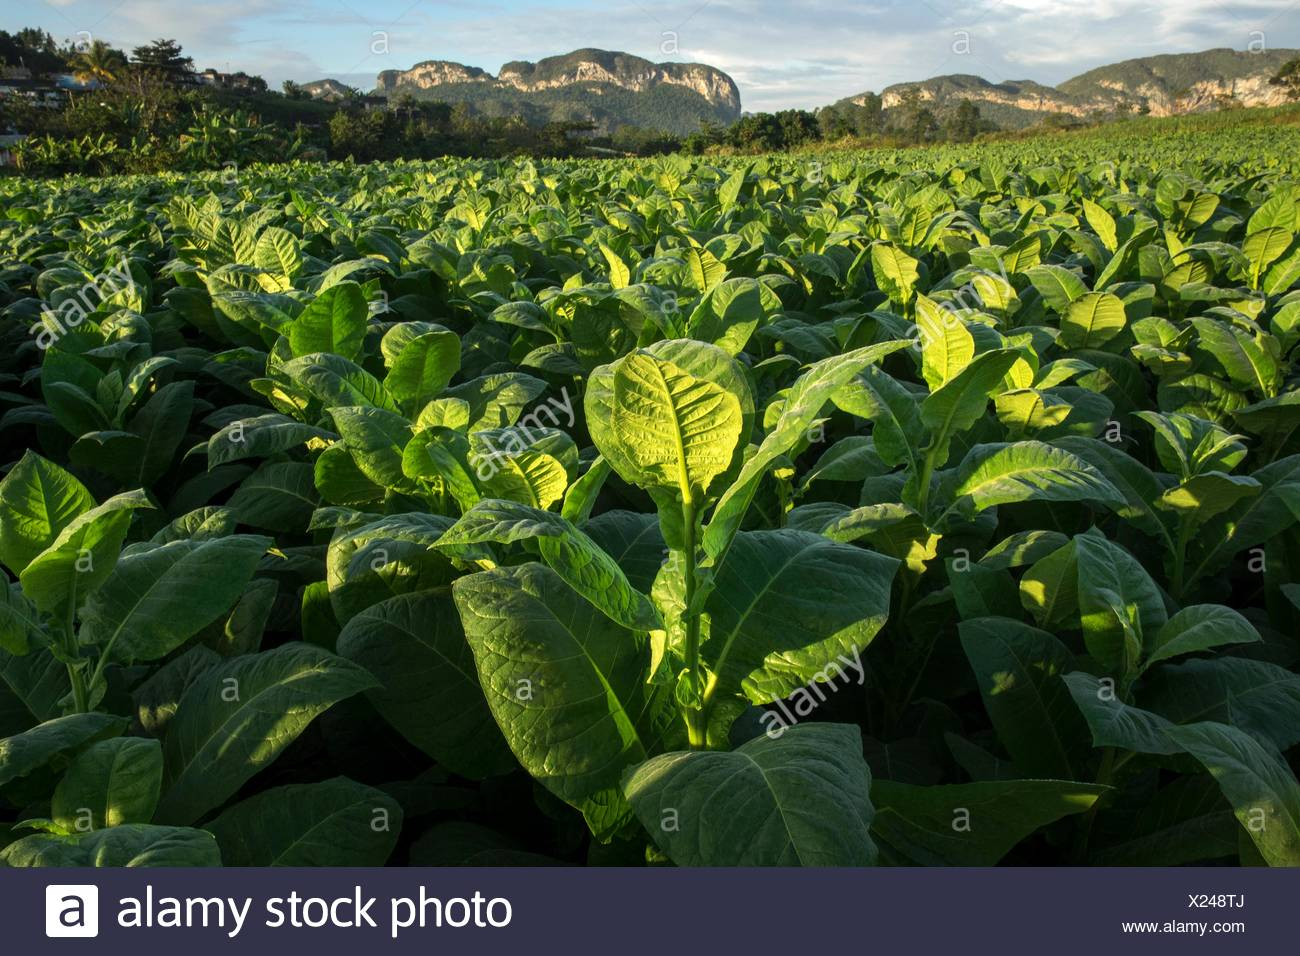 A large field of tobacco. - Stock Image